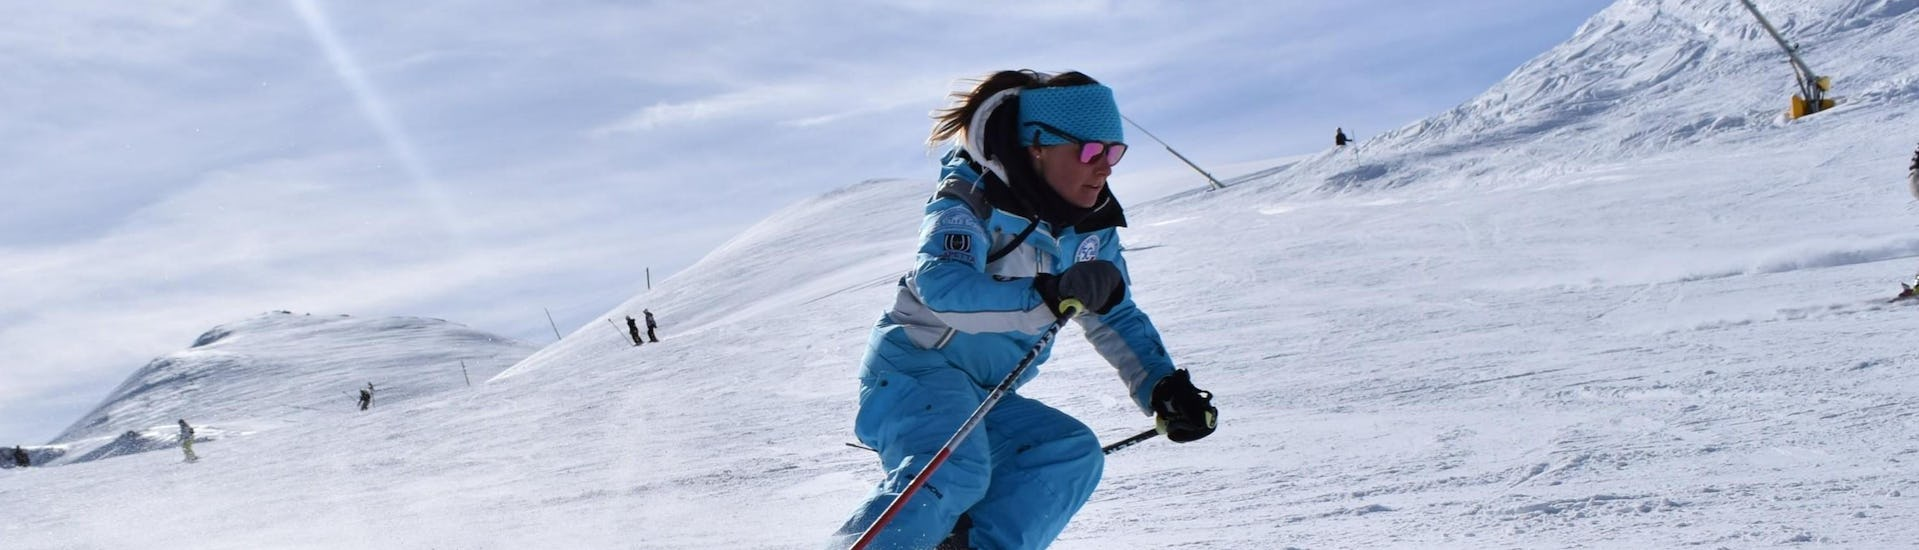 A skier improves her technique in private ski lessons for adults - All levels of the ski and snowboard school Scuola di Sci e Snowboard Prato Nevoso.